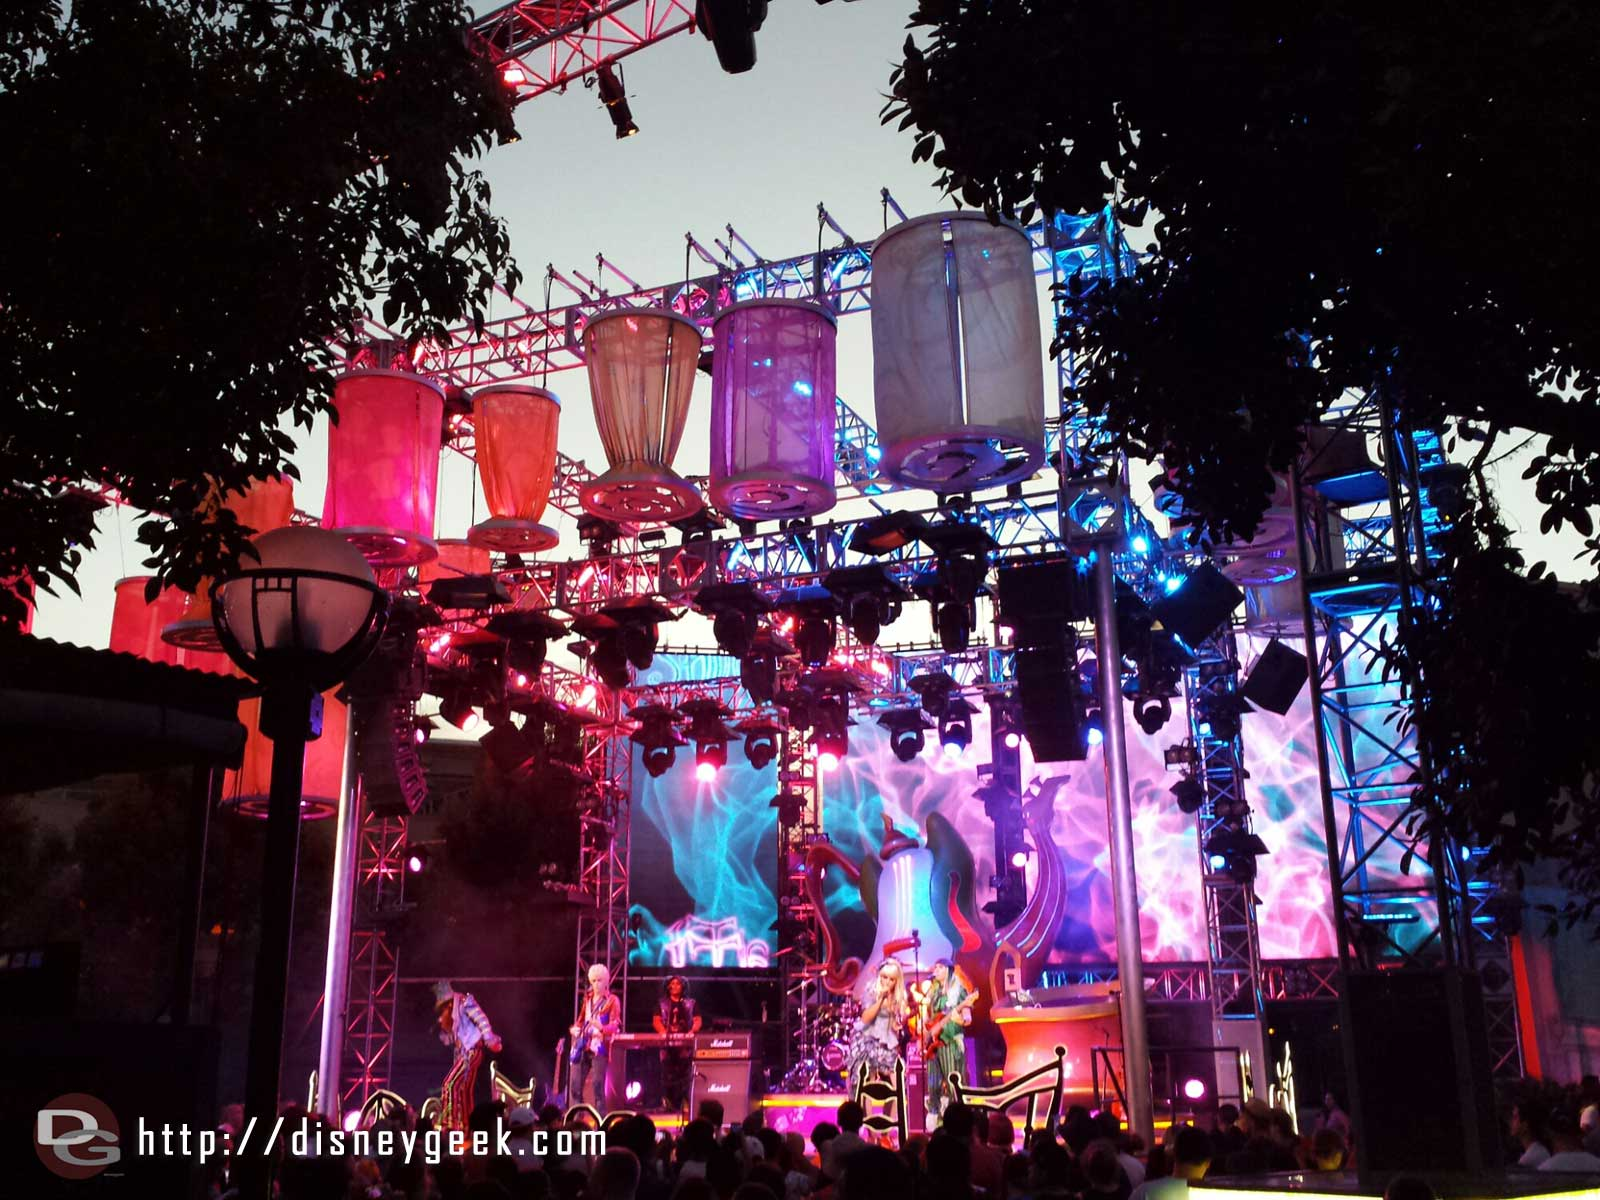 #MadTParty Band performing as I passed through Hollywood Land